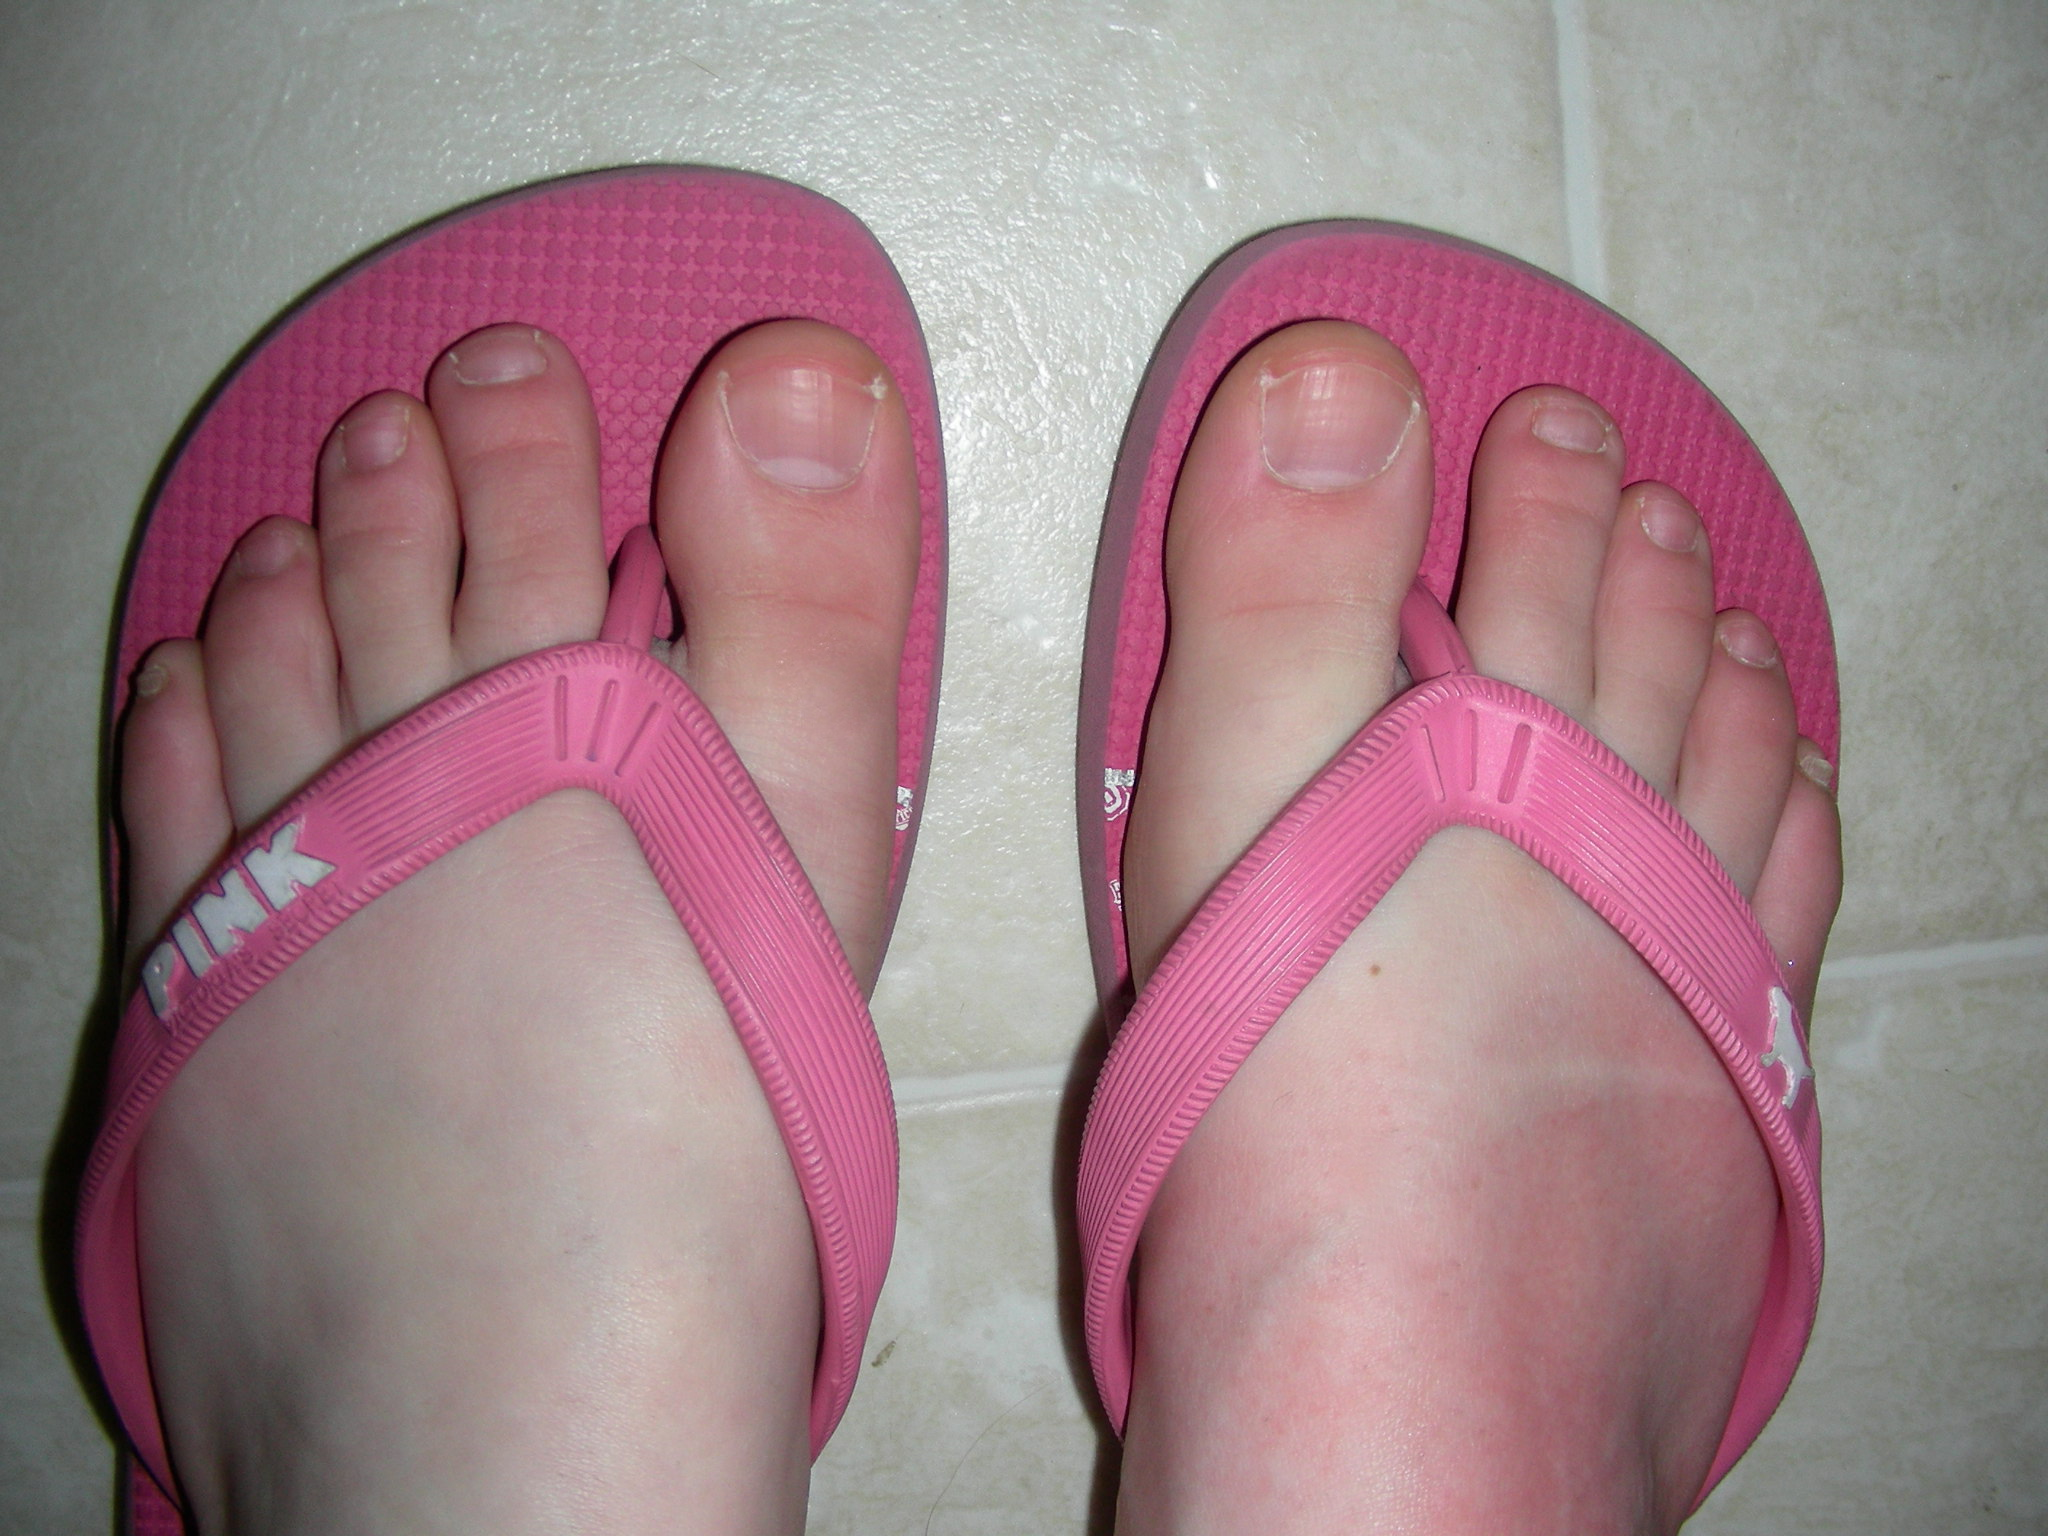 Revlon Perfect Pedicure Nails: You Reviewed It! | Fashion Pulse Daily